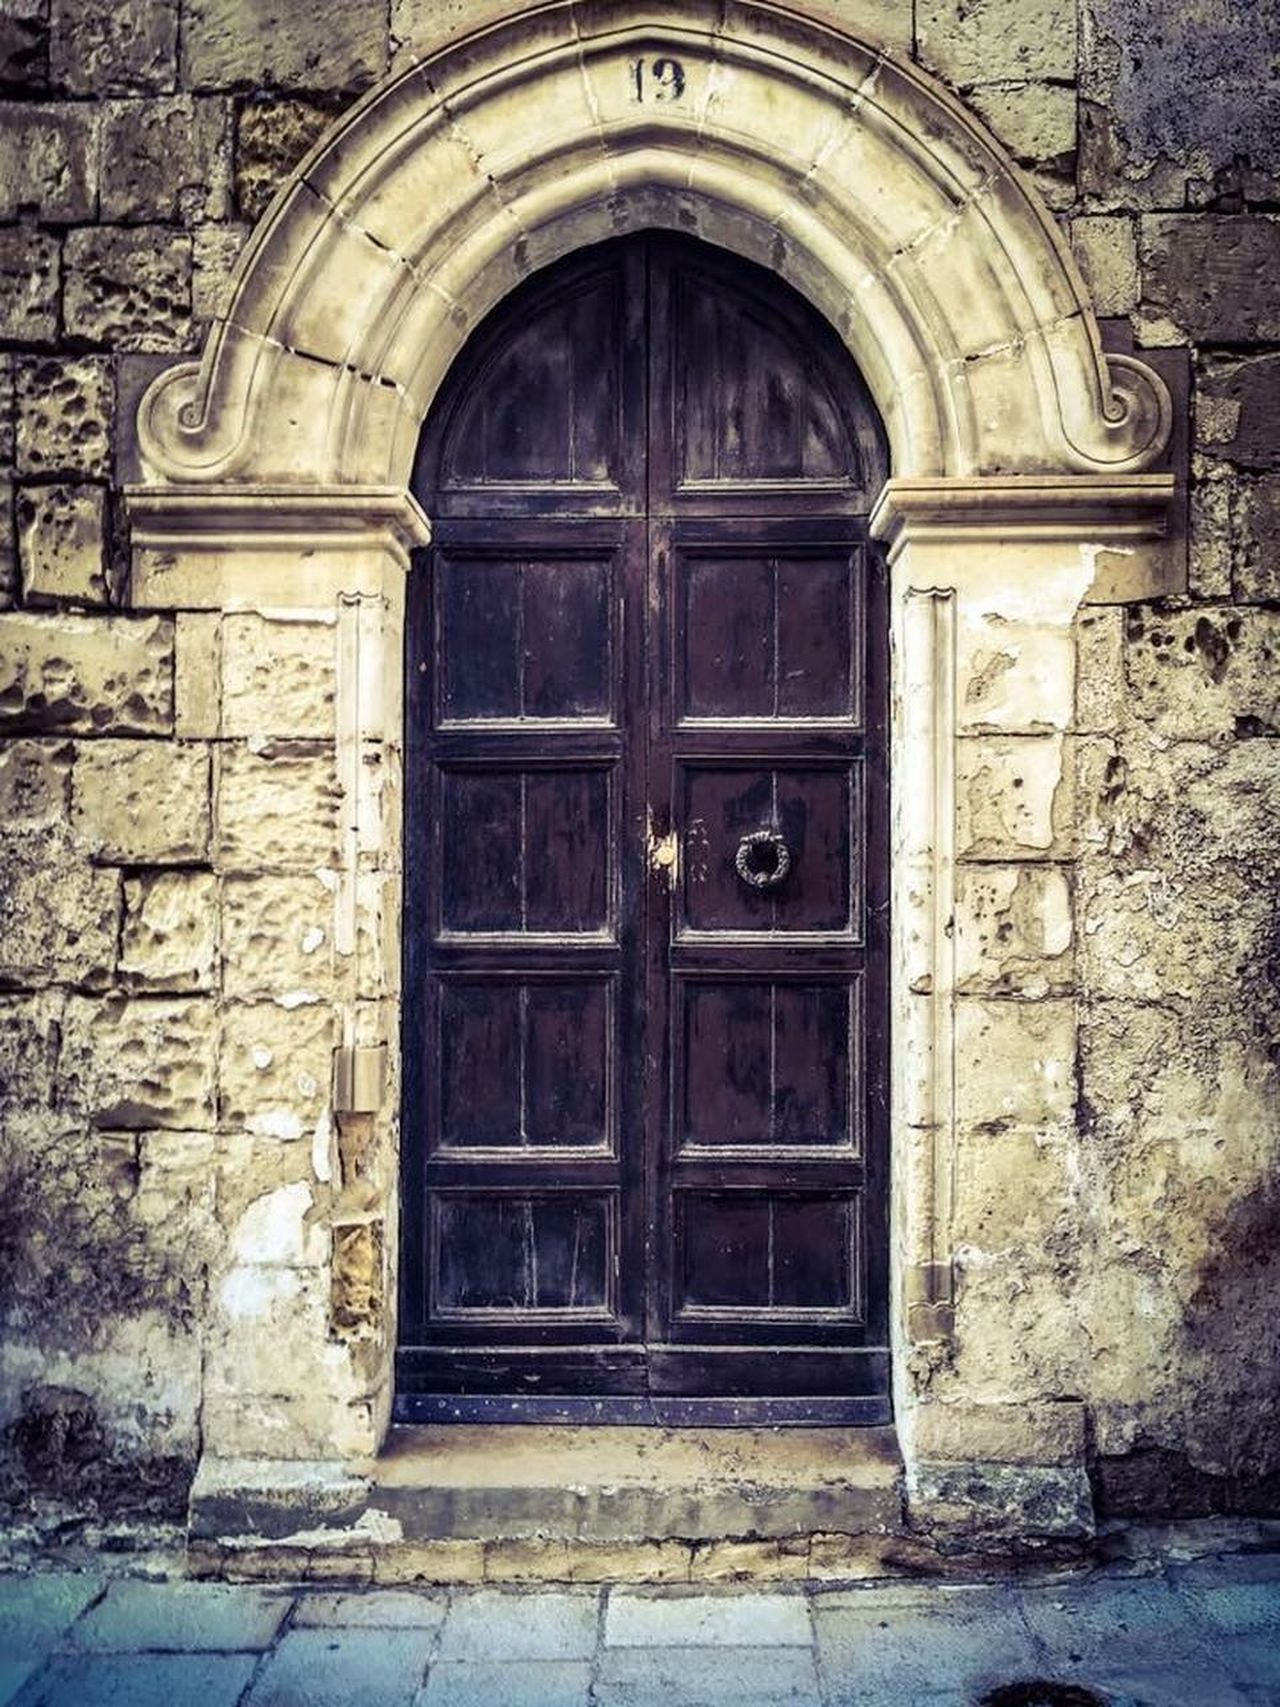 Door Closed Safety Protection Entrance Security Day Architecture Built Structure Outdoors No People Doorway Building Exterior Close-up